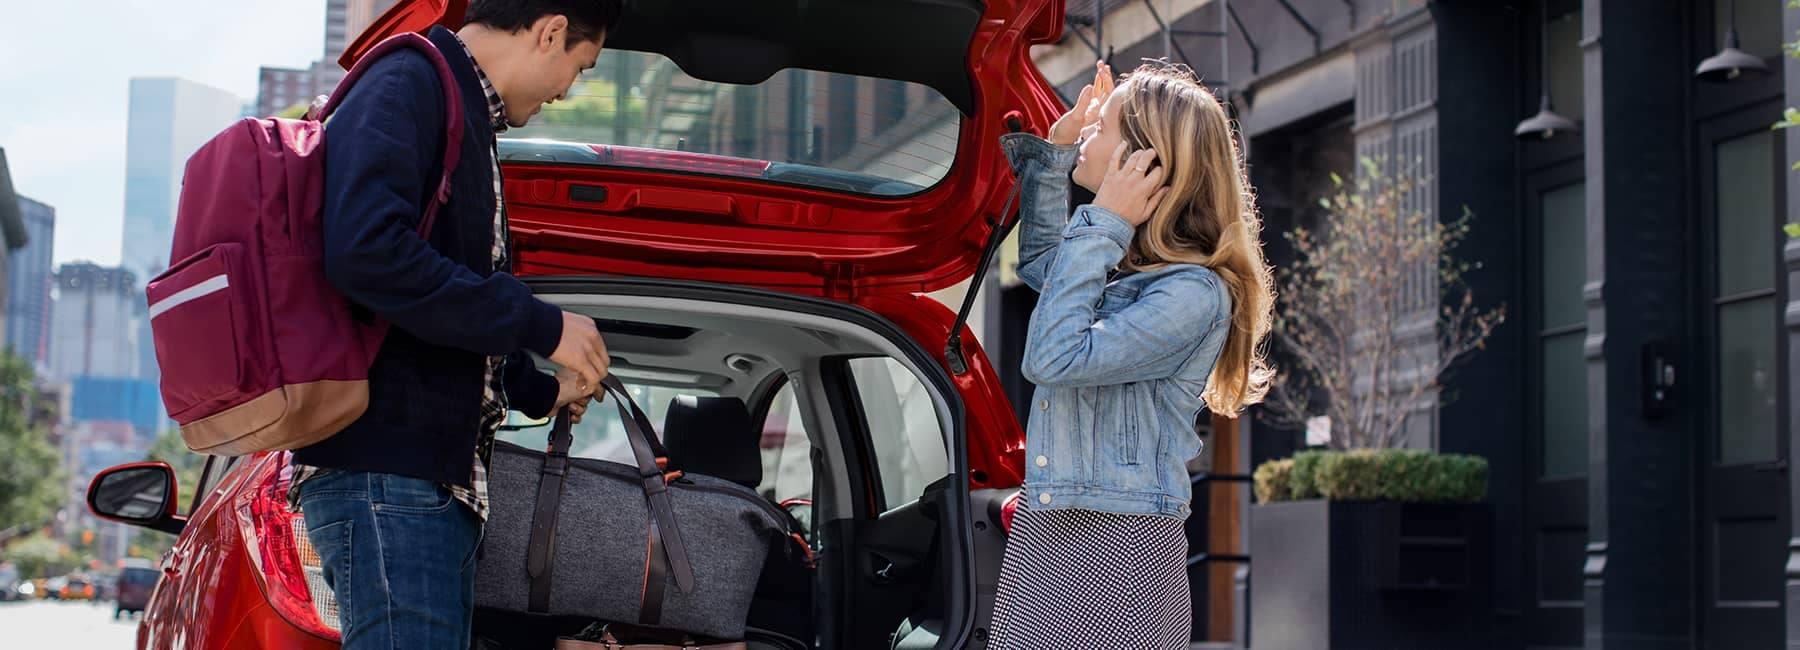 Red 2020 Chevrolet Spark with Open Hatchback